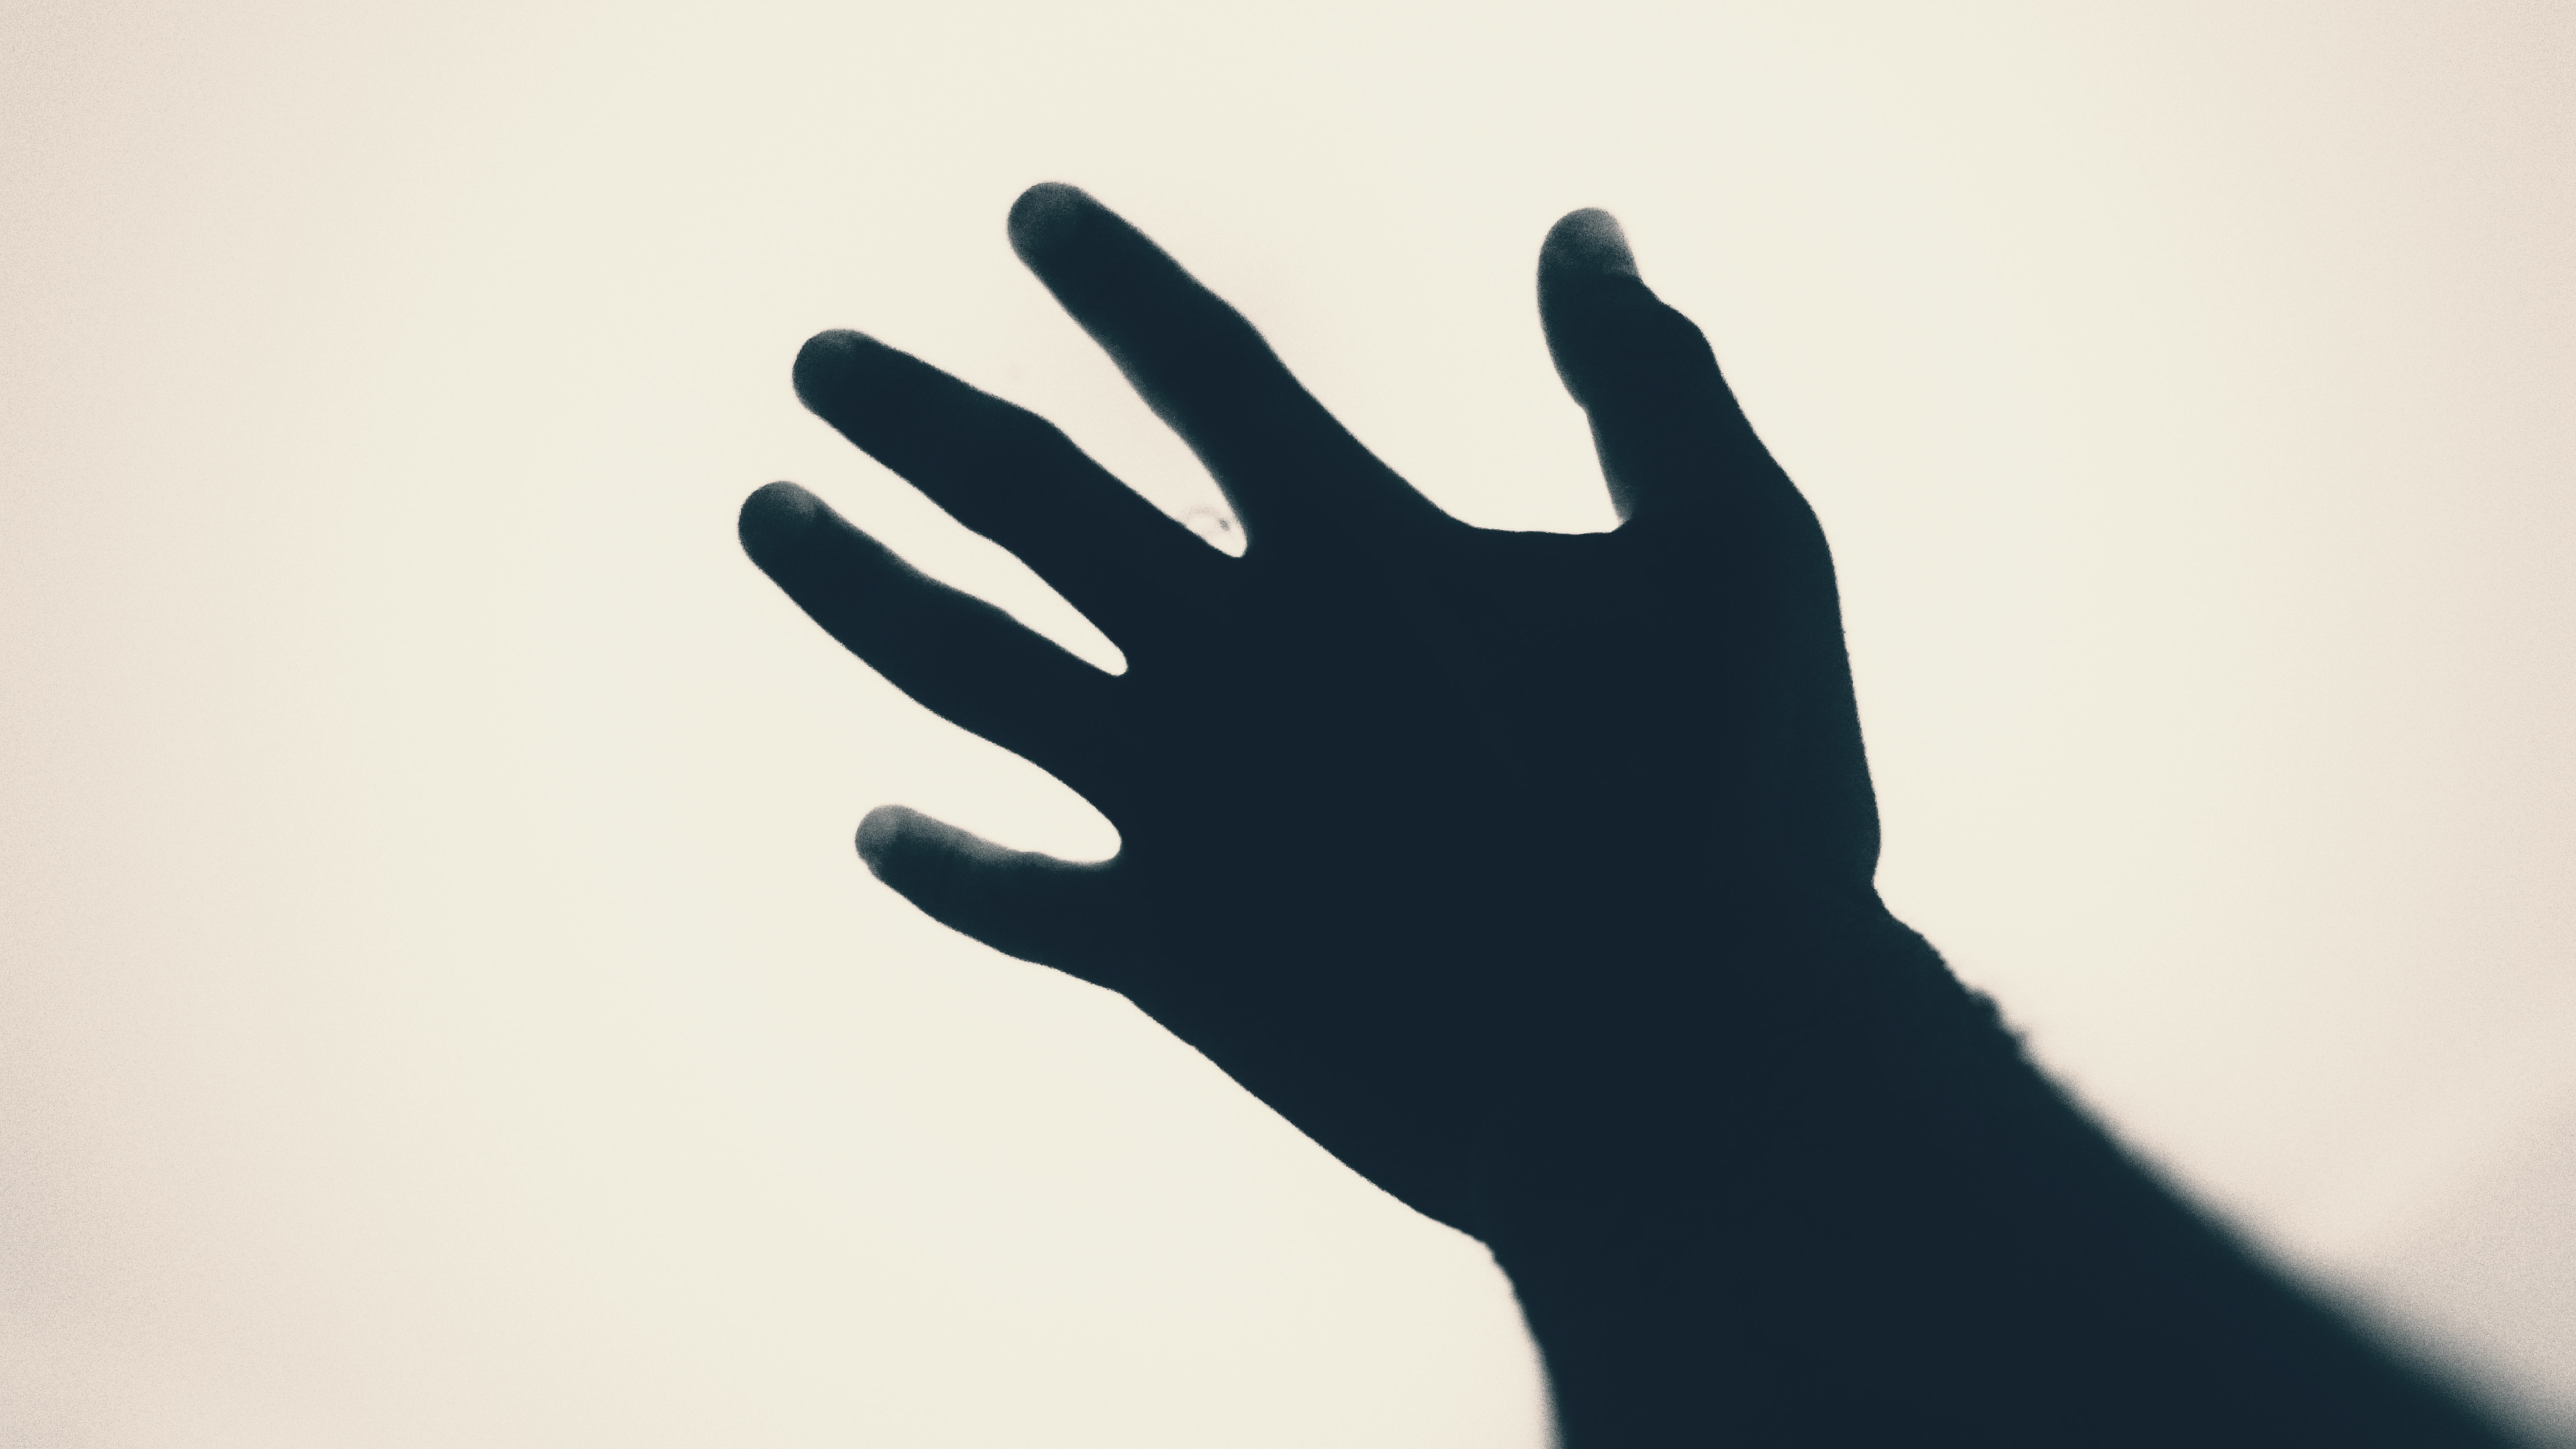 silhouette of left human hand during daytime